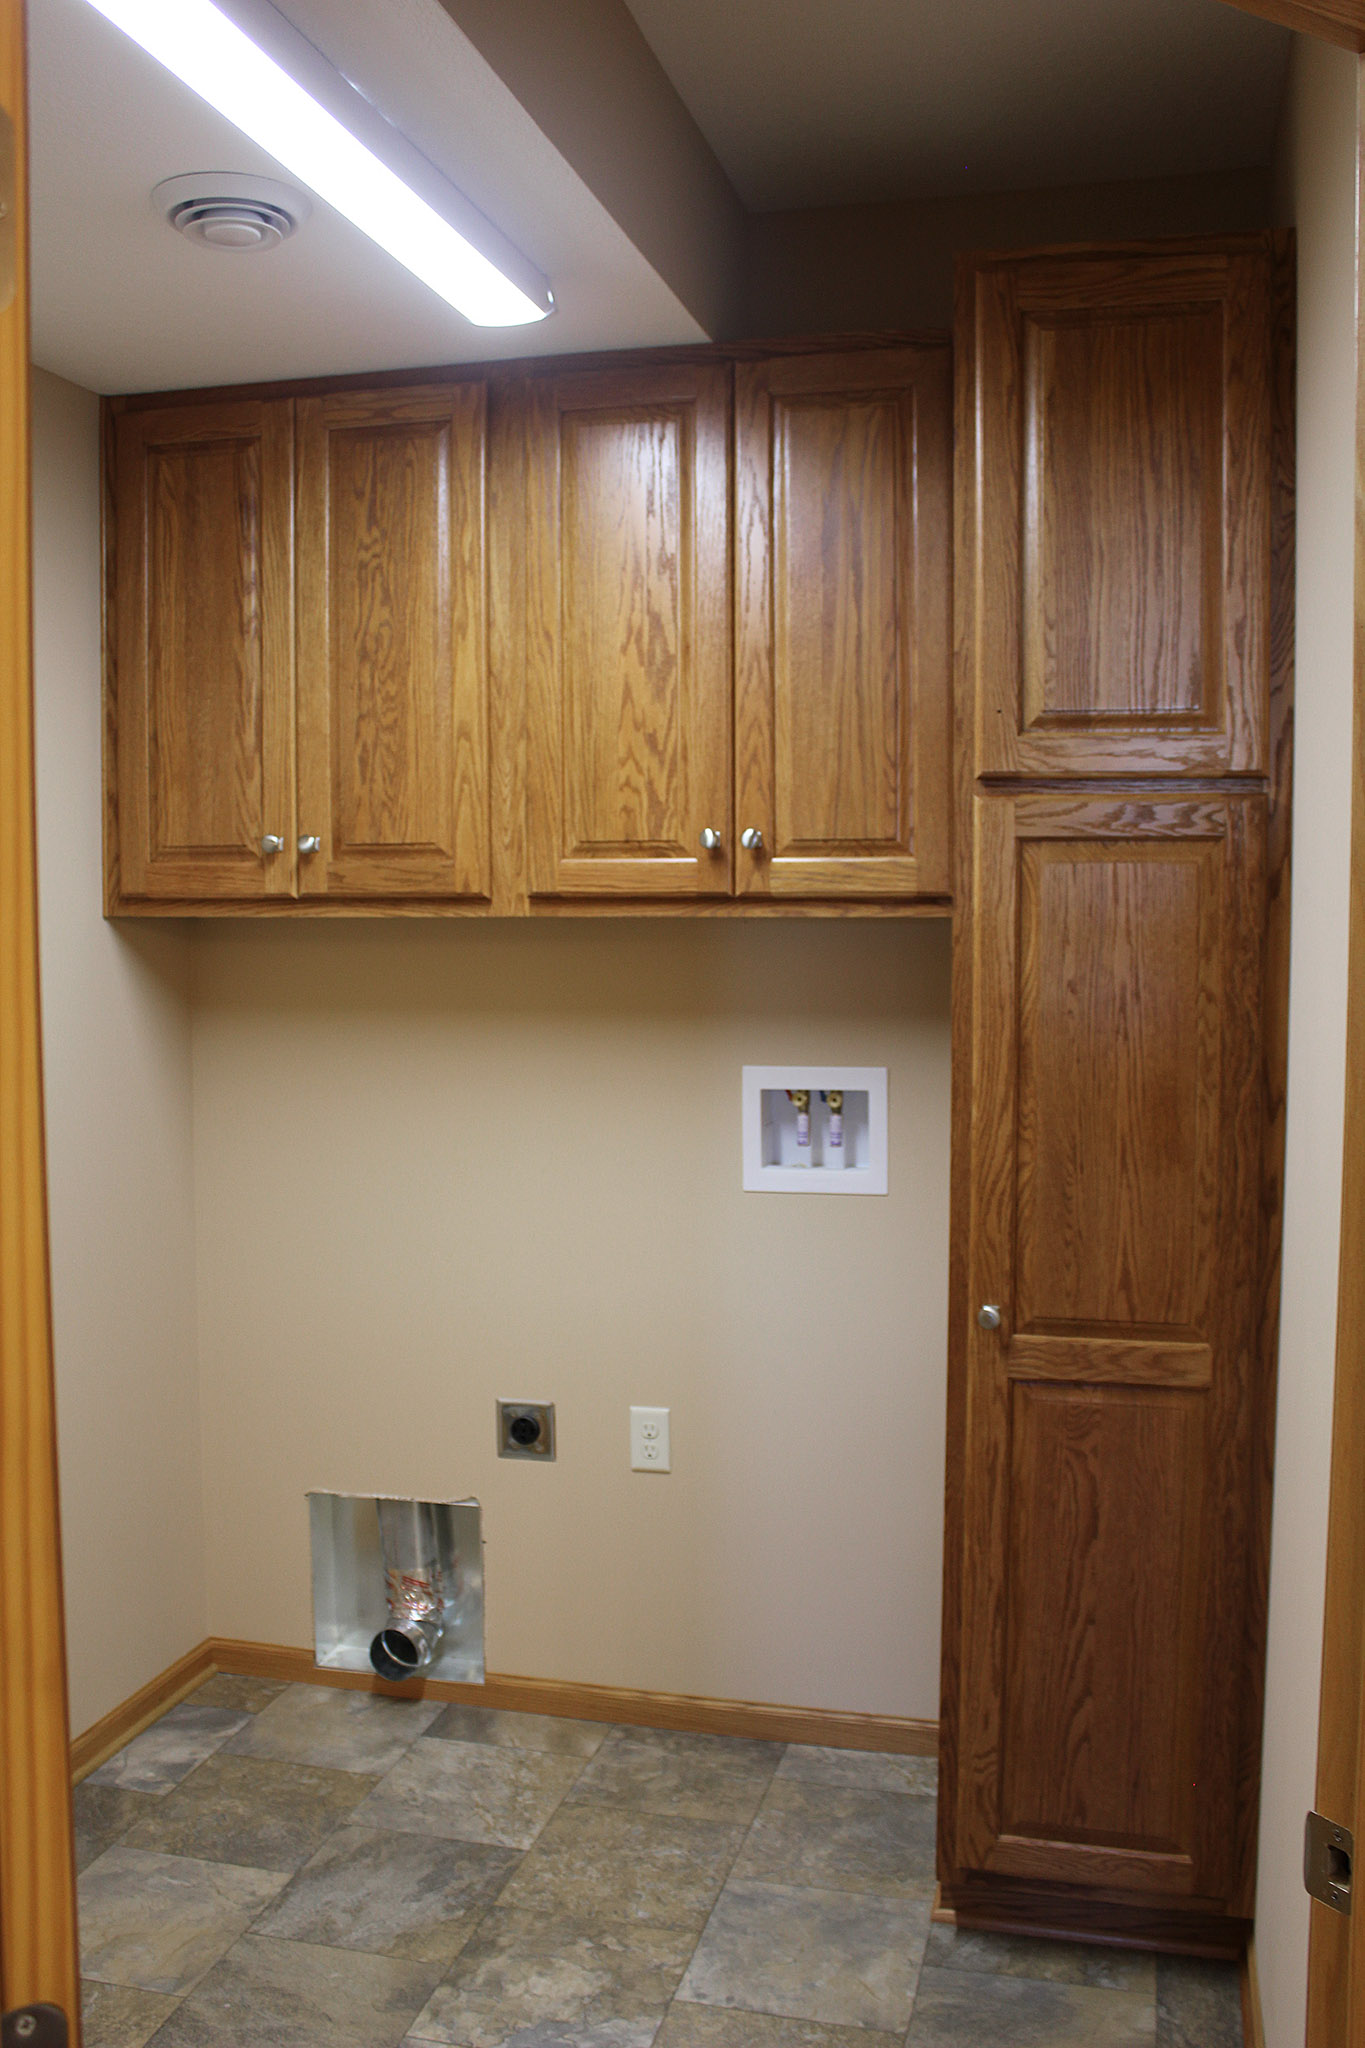 Laundry room with built-in cabinets